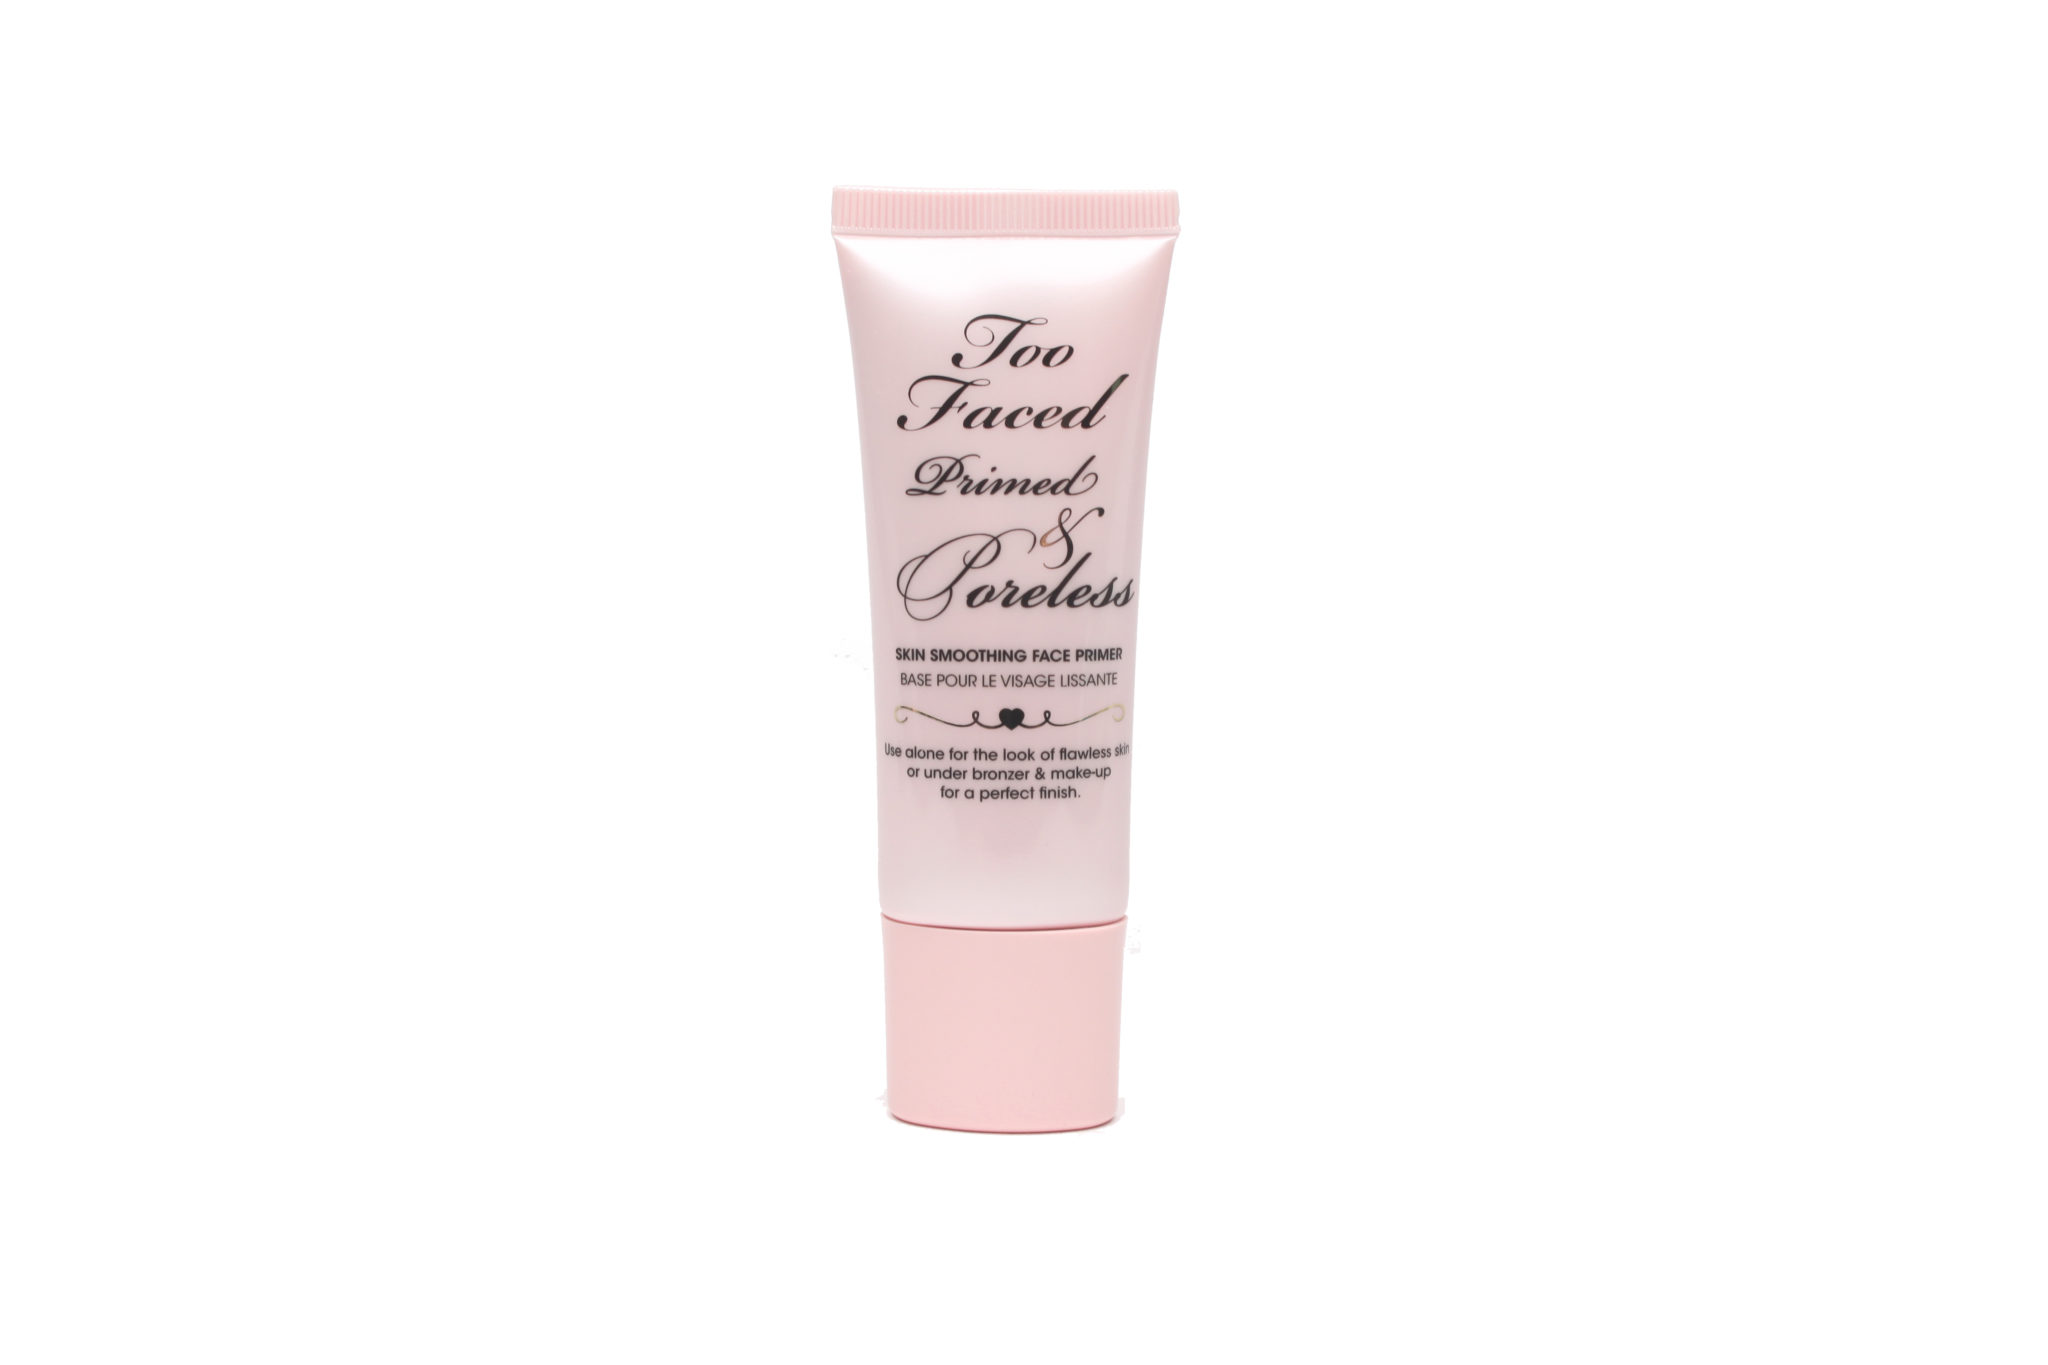 53696 Primed & Poreless Primer 1 oz Front